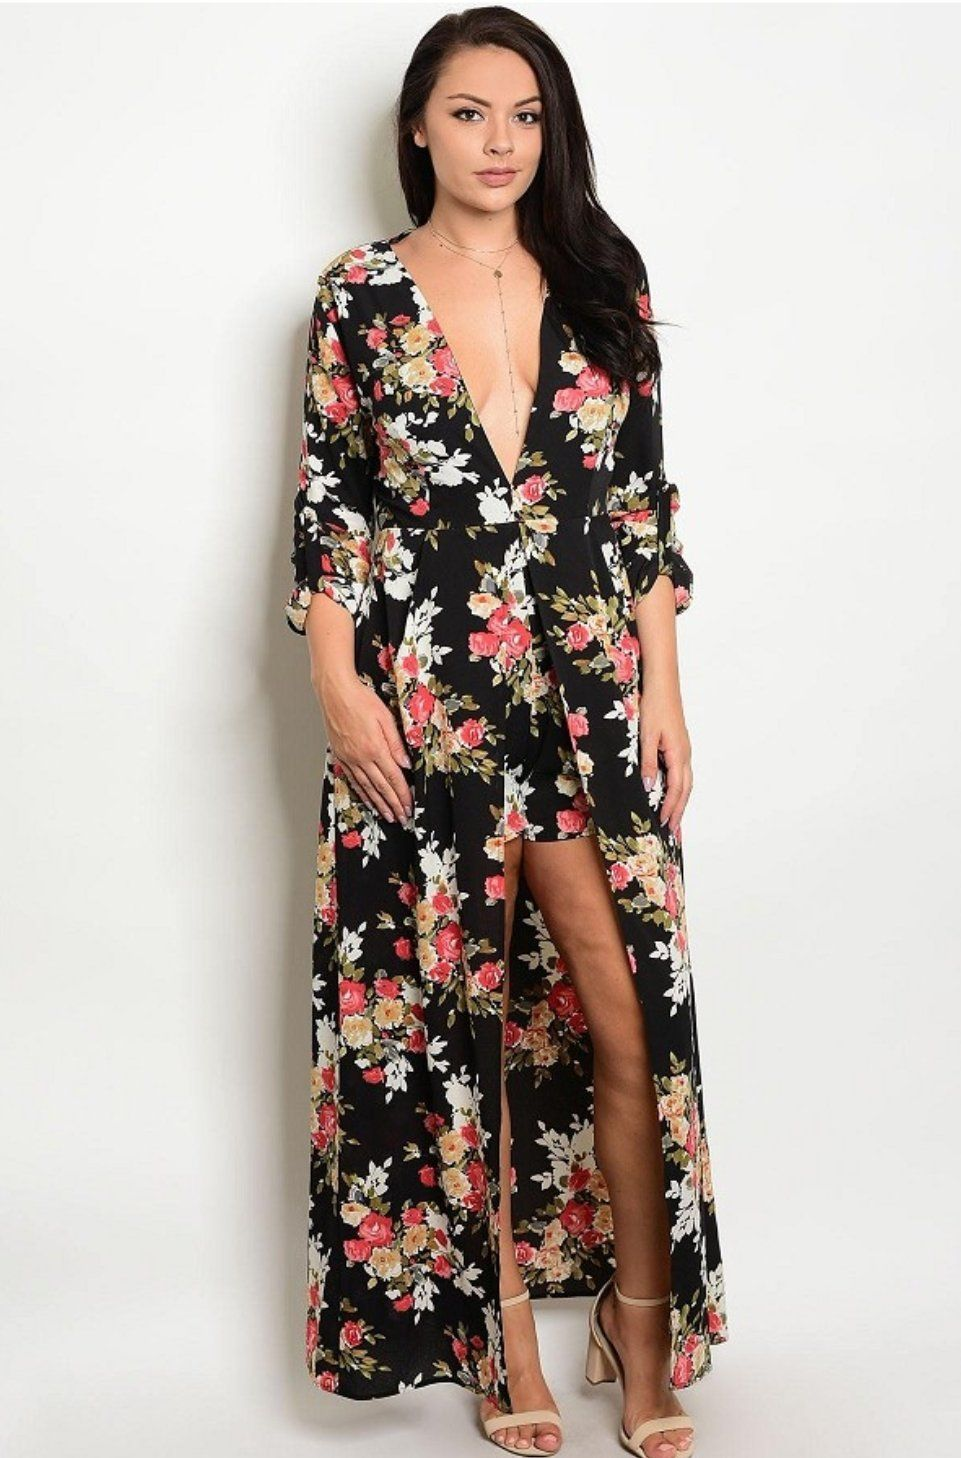 362564eaafb Plus Size High-low Printed Romper